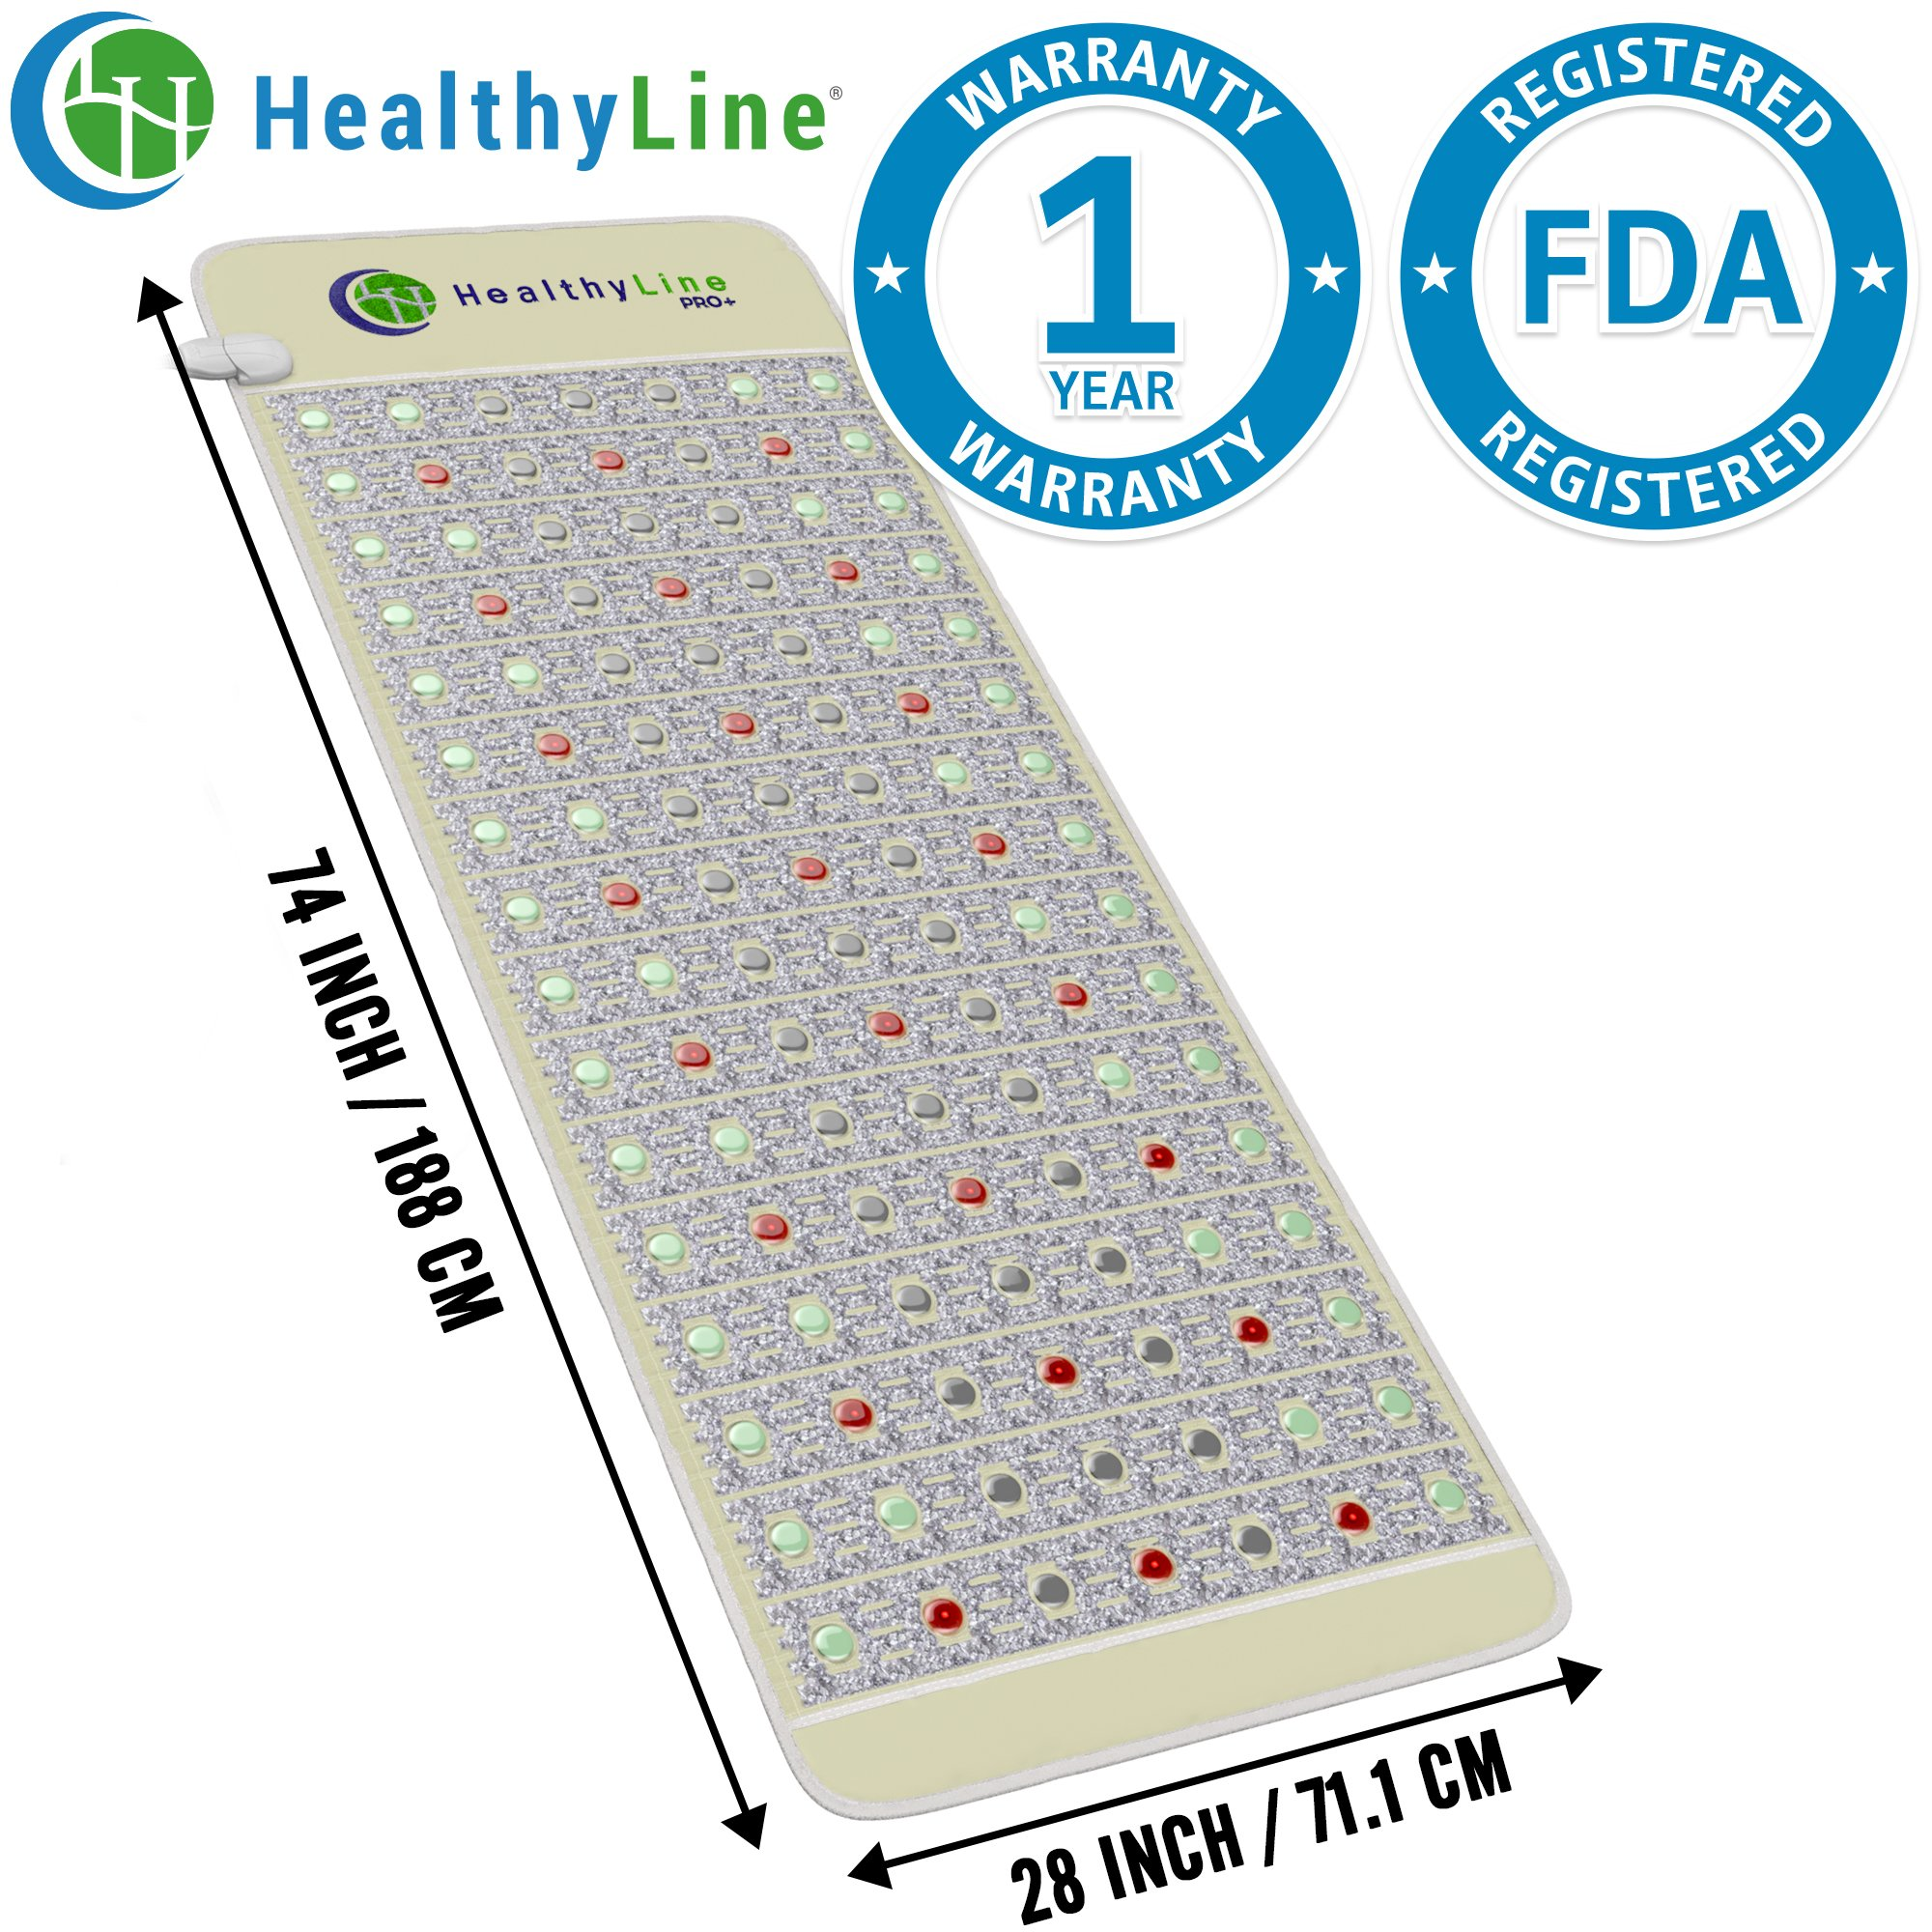 HealthyLine Infrared Heating Mat|PEMF Pro+, Amethyst, Jade & Tourmaline, Healing Mat 74'' x 28''|  Heated Negative Ions (Full Body & Firm) |Relieve Sore Joints, Muscles, Arthritis| FDA Registered